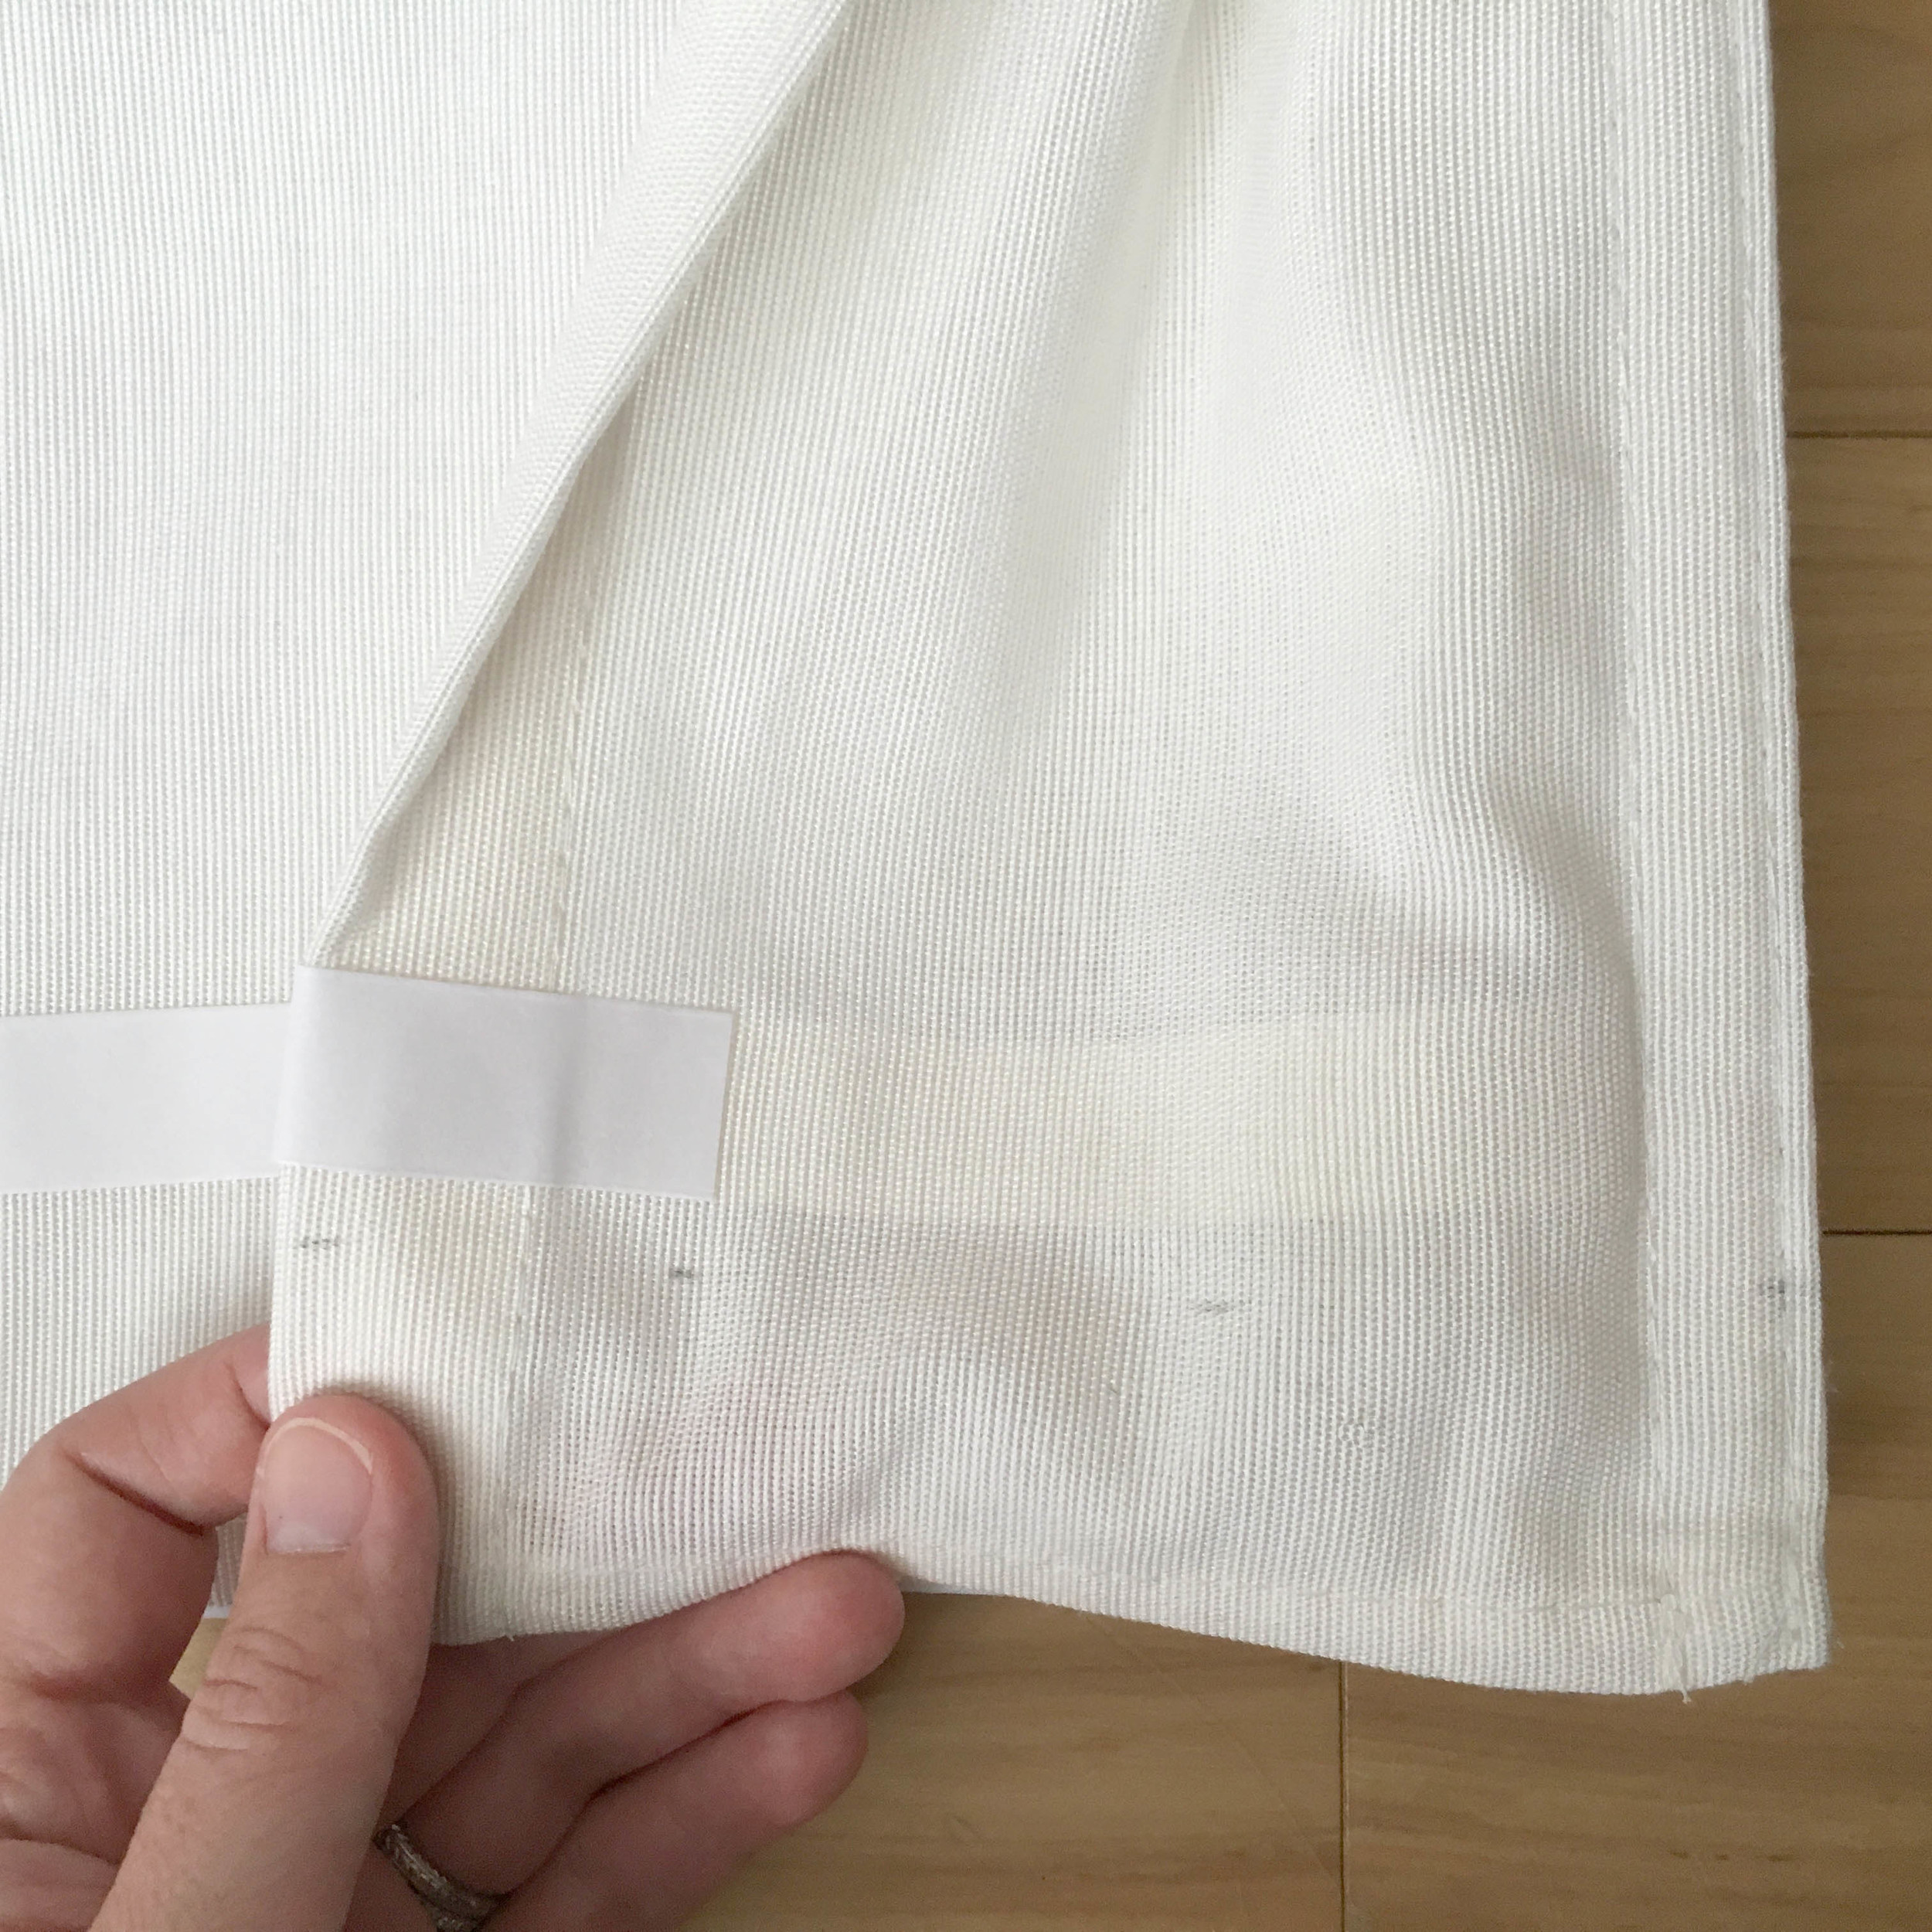 Using Double Sided Tape to Add Trim on Roman Shades